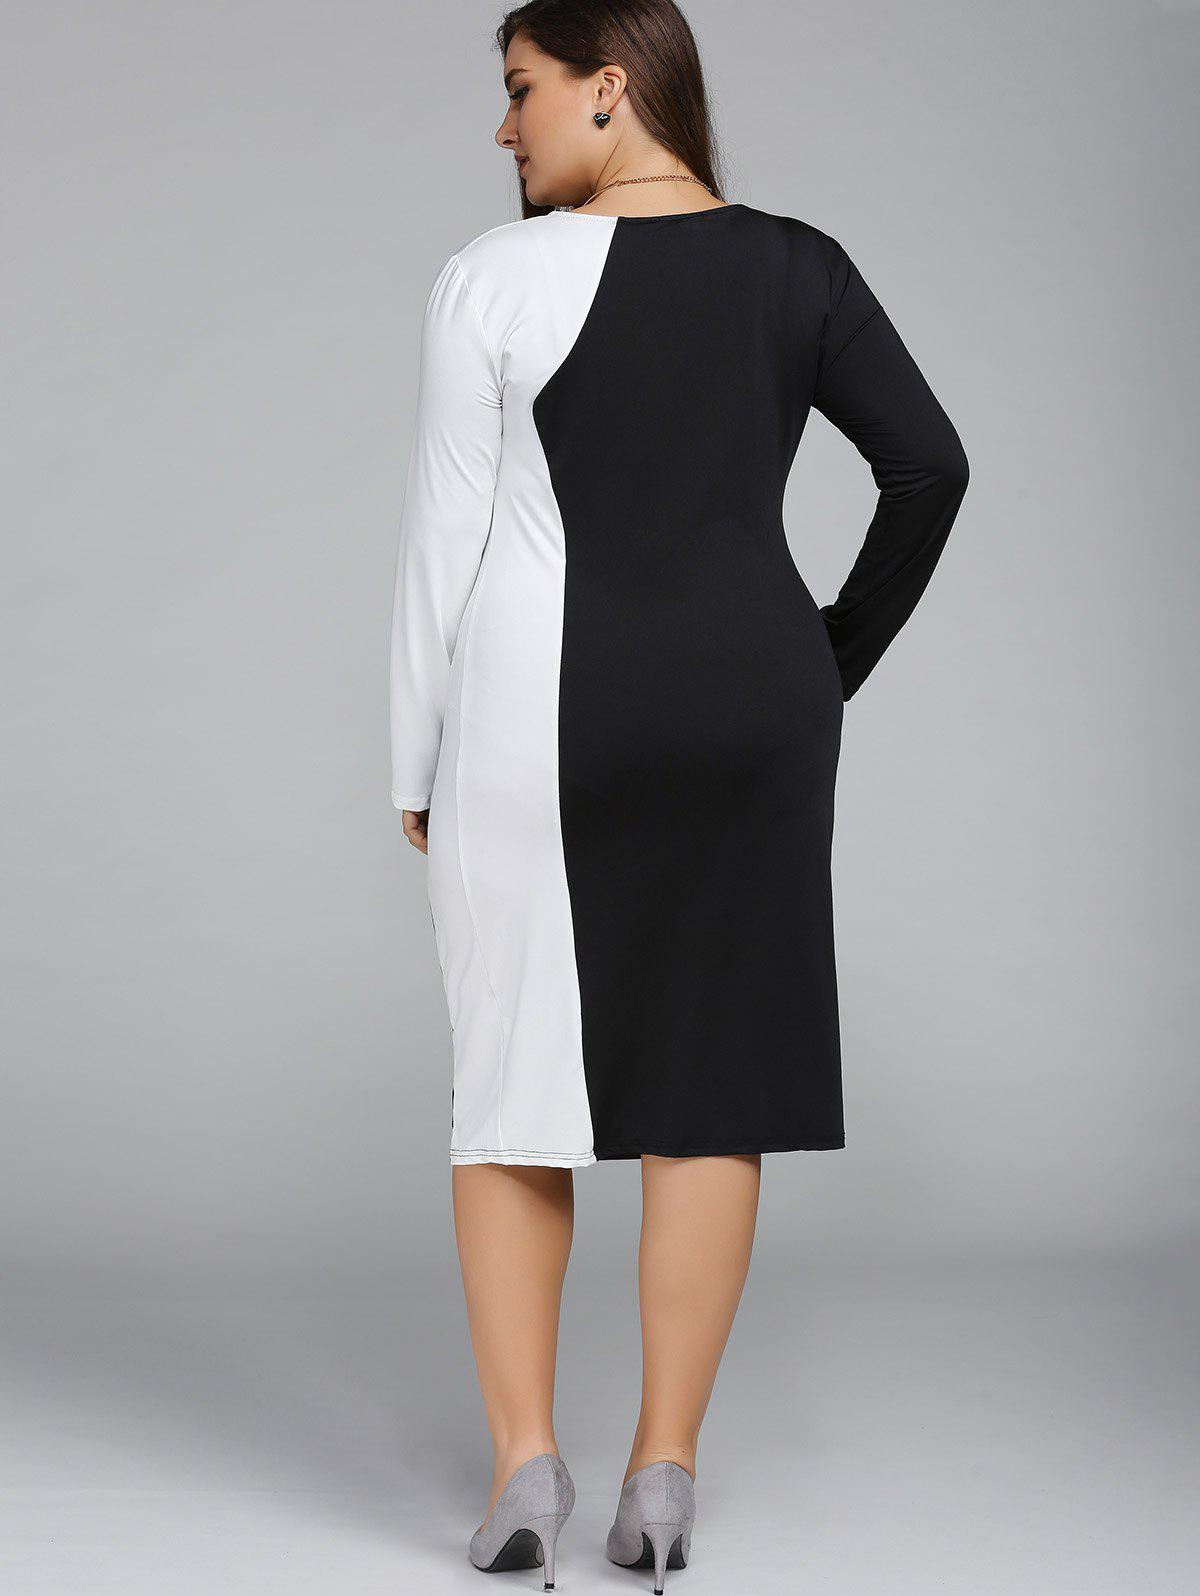 Shop a great selection of Work Dresses for Women at Nordstrom Rack. Find designer Work Dresses for Women up to 70% off and get free shipping on orders over $